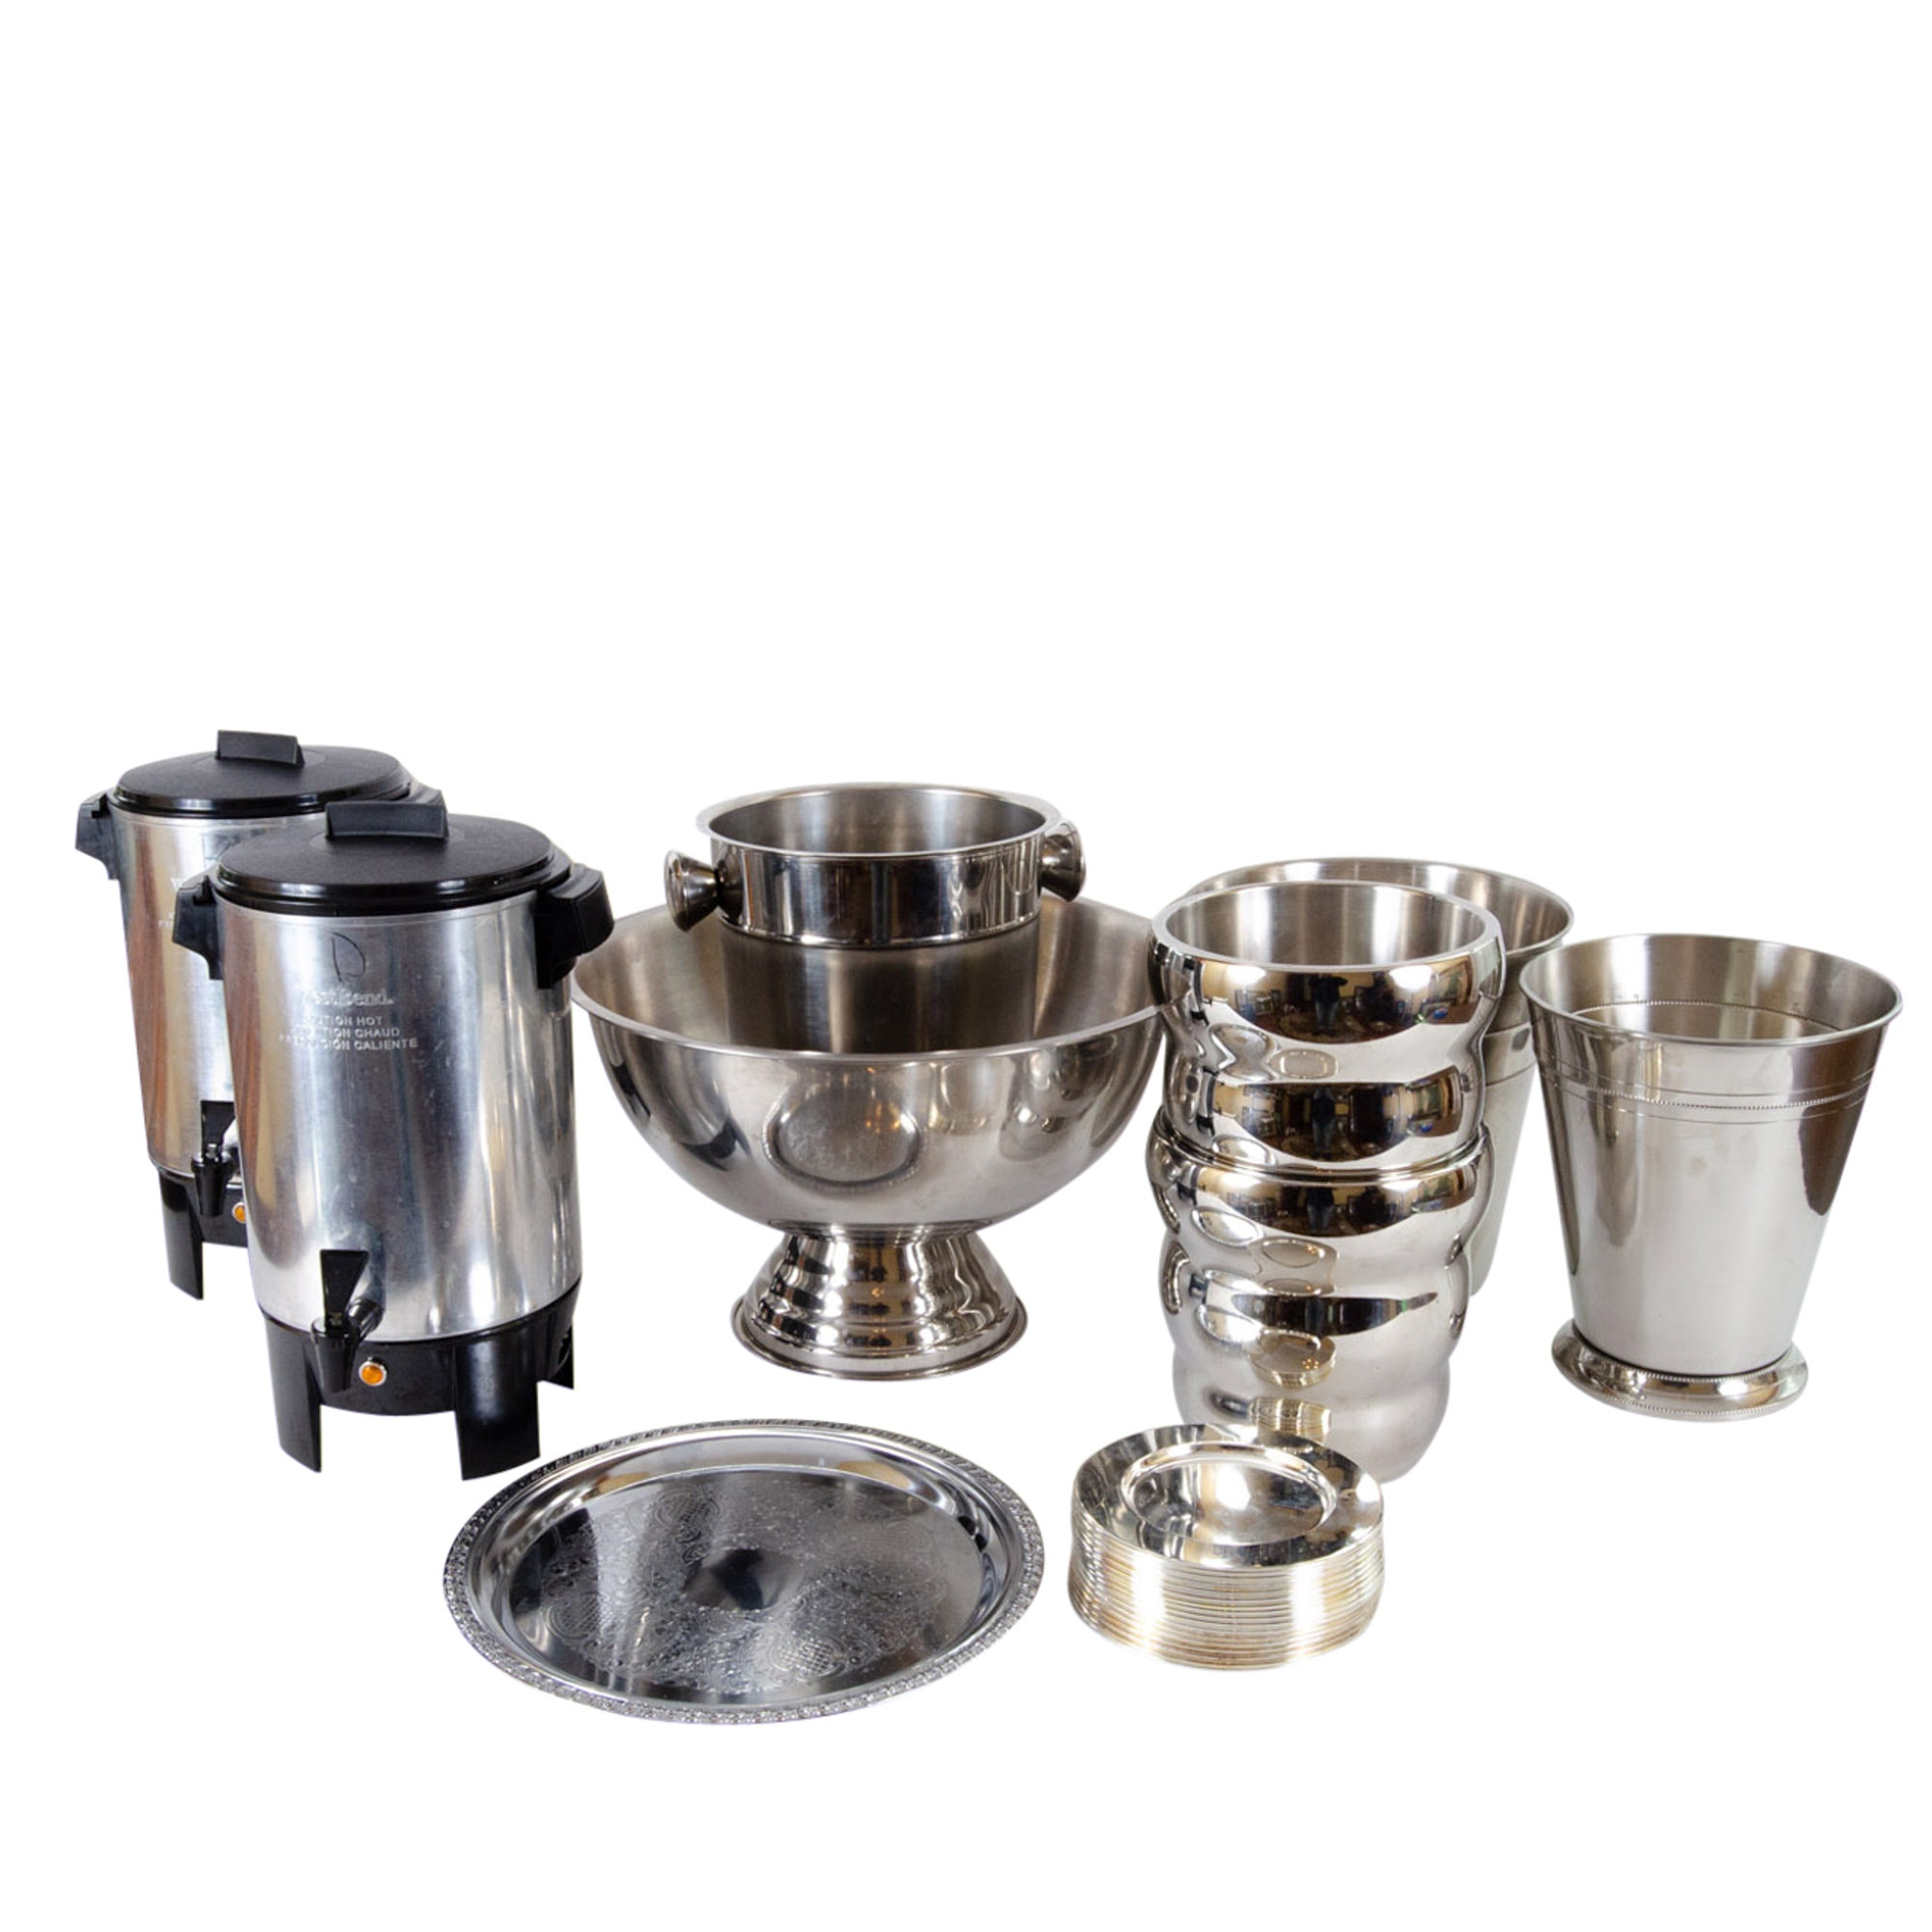 Westbend Coffee Perculators and Stainless Steel and Silverplate Serveware